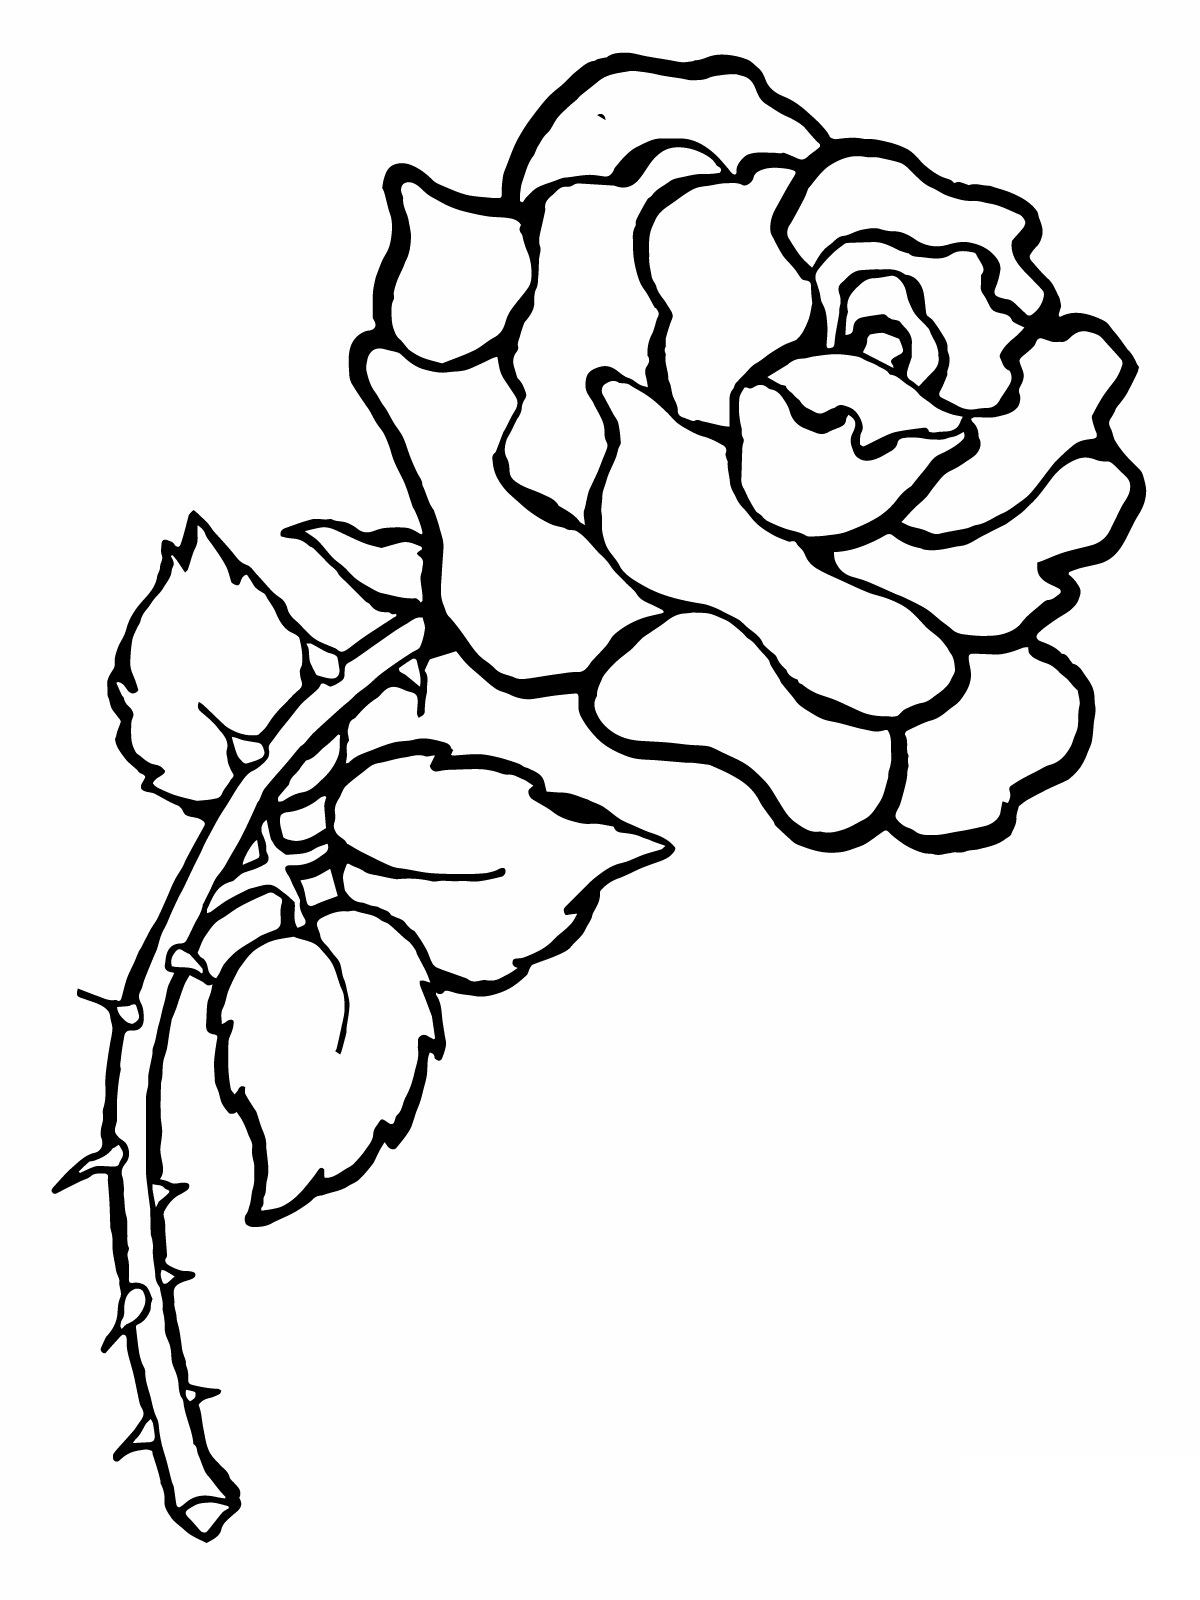 It is a graphic of Nerdy roses coloring book